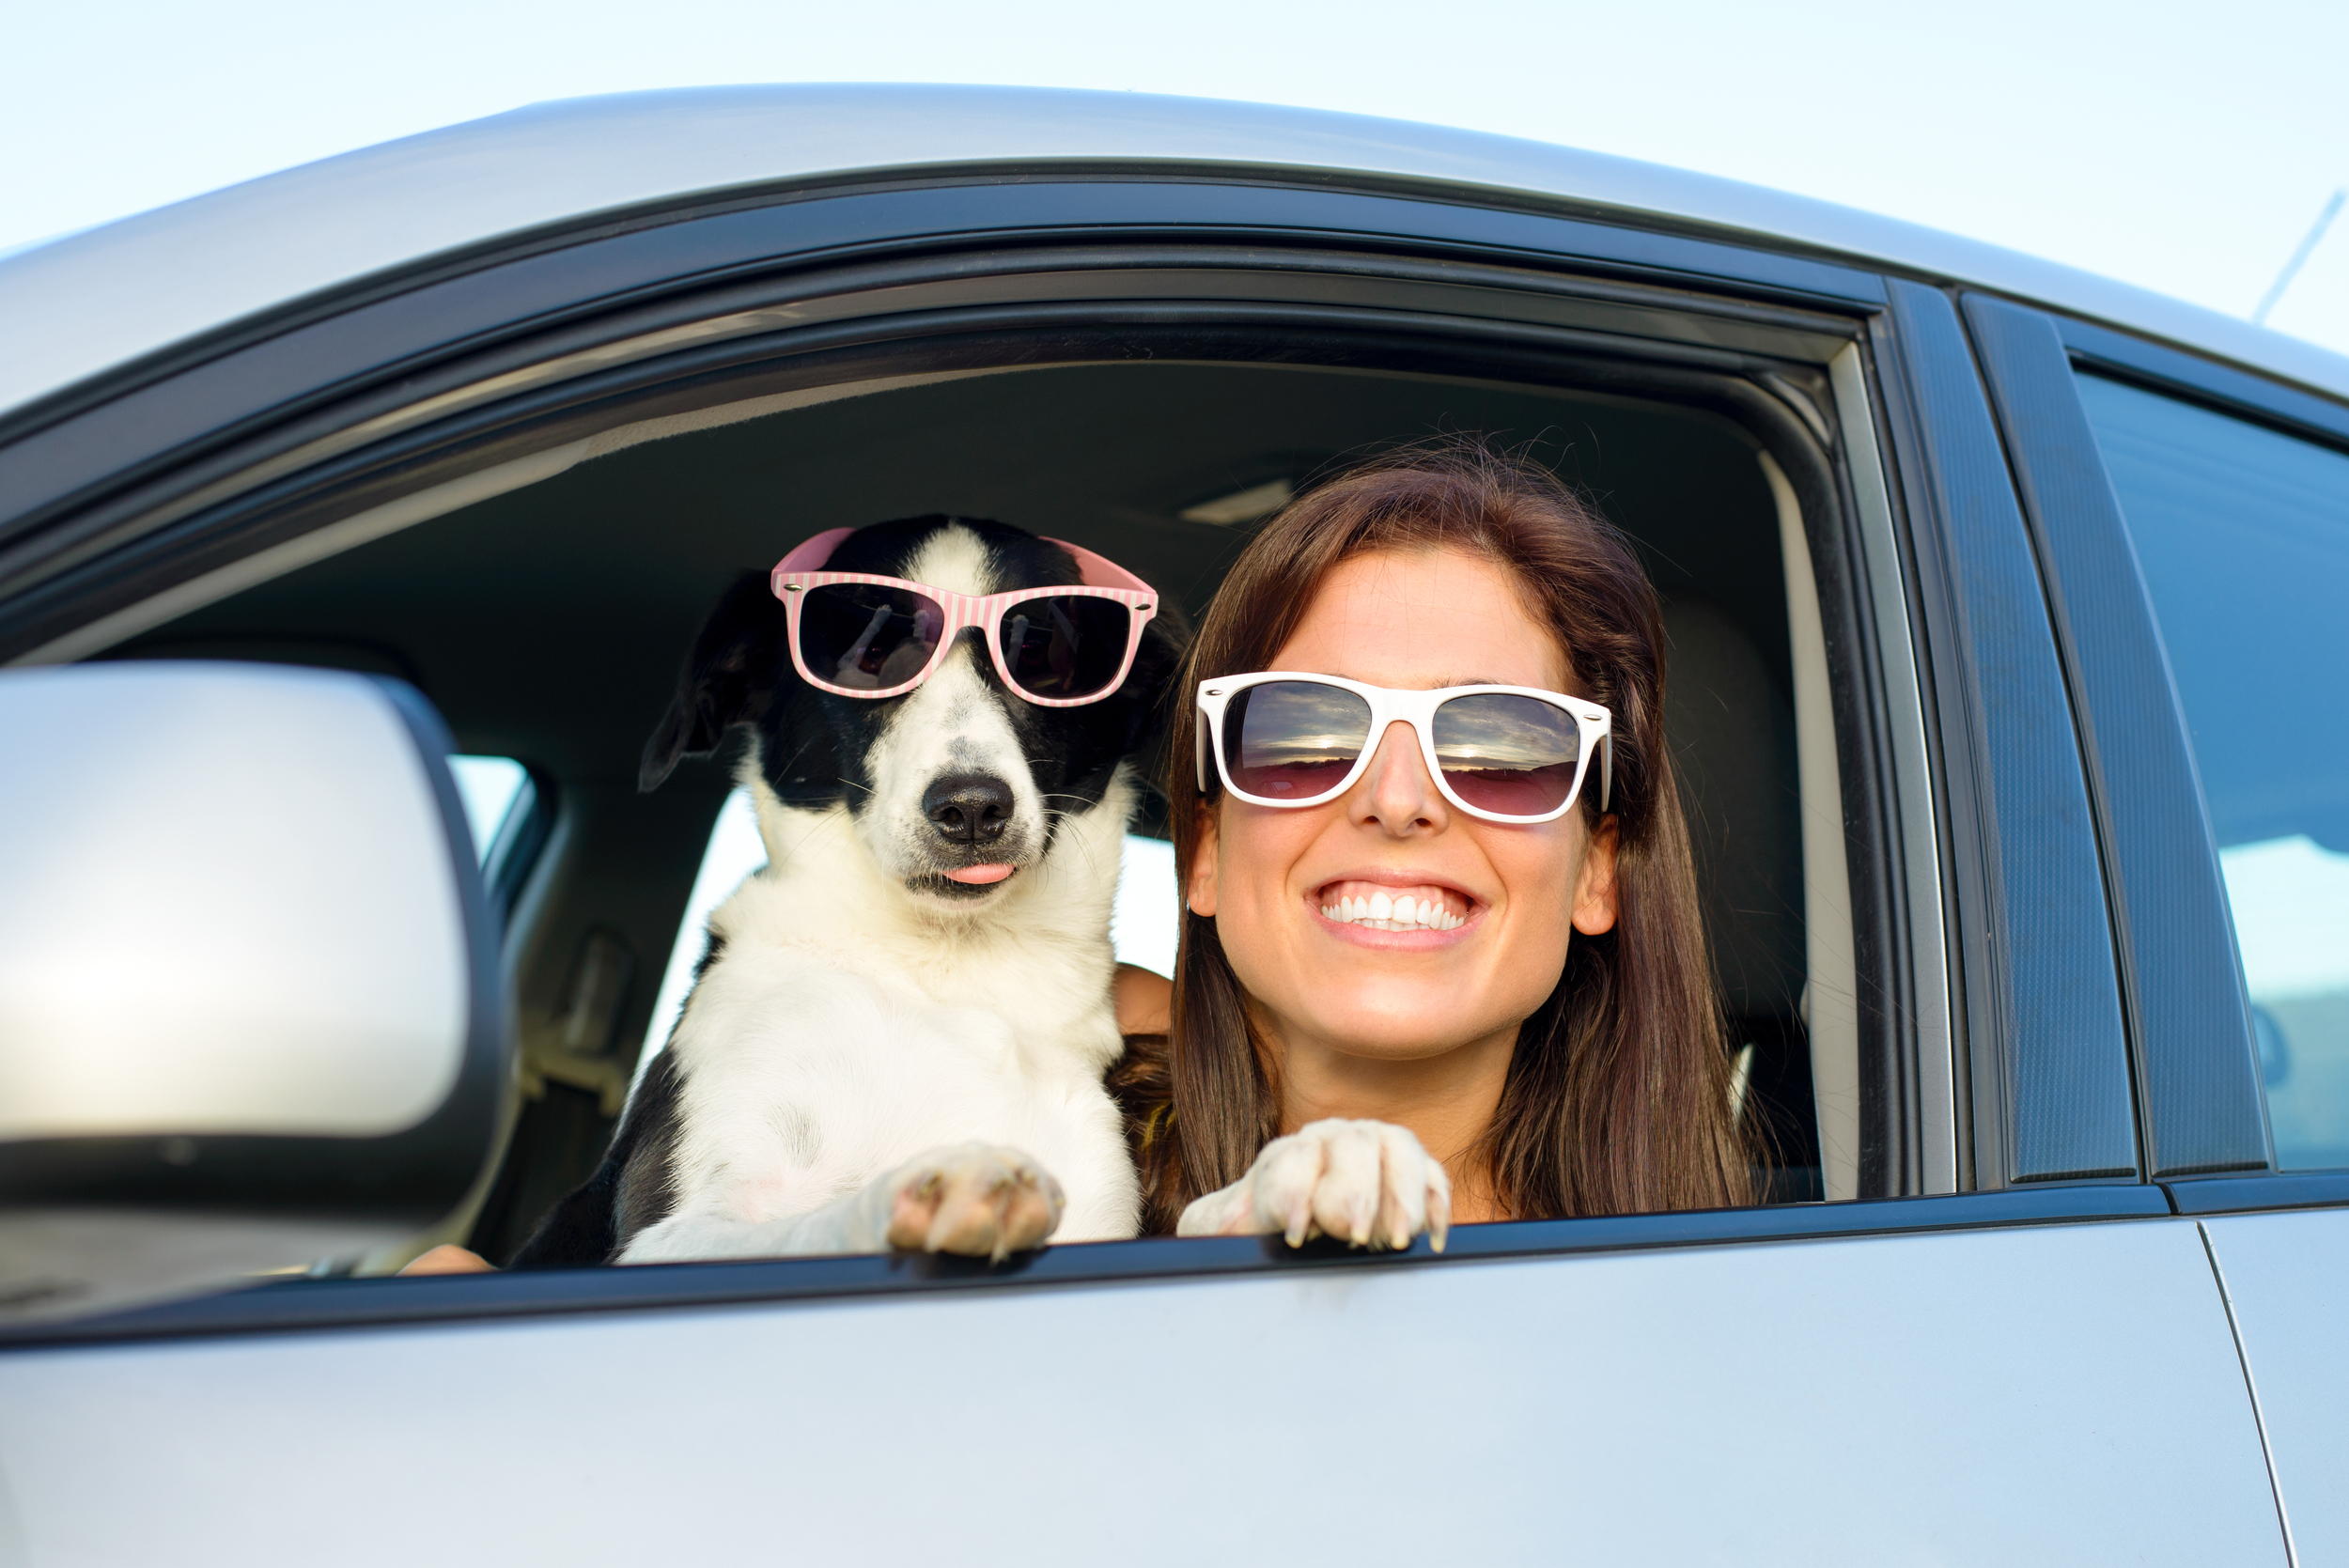 Automobile Insurance.  With millions of cars on the road it is important to protect yourself and your loved ones.